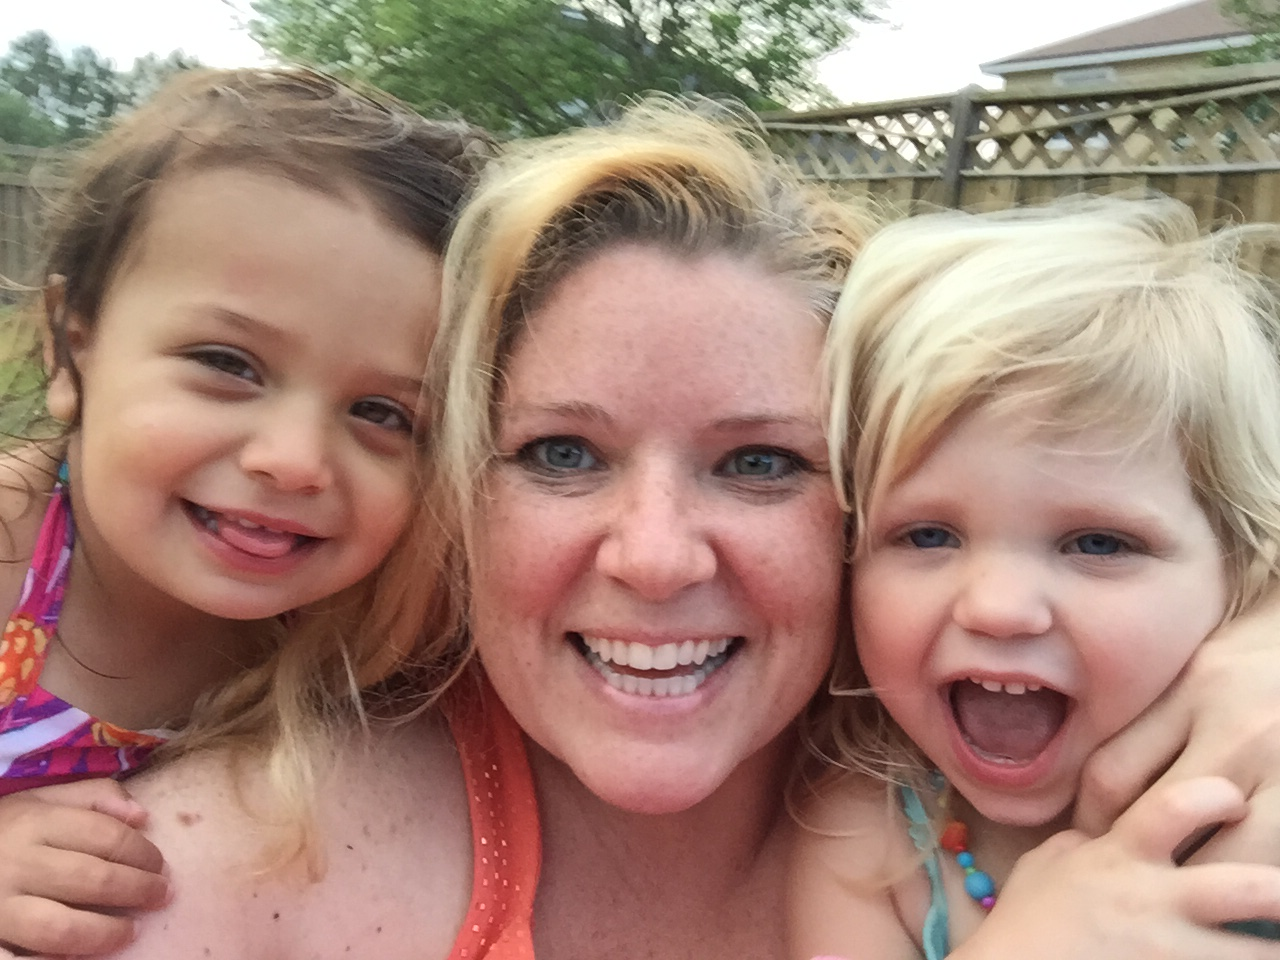 I have adopted two little girls at birth. They are now 3 years old and 2 years old. They are the light of my world!